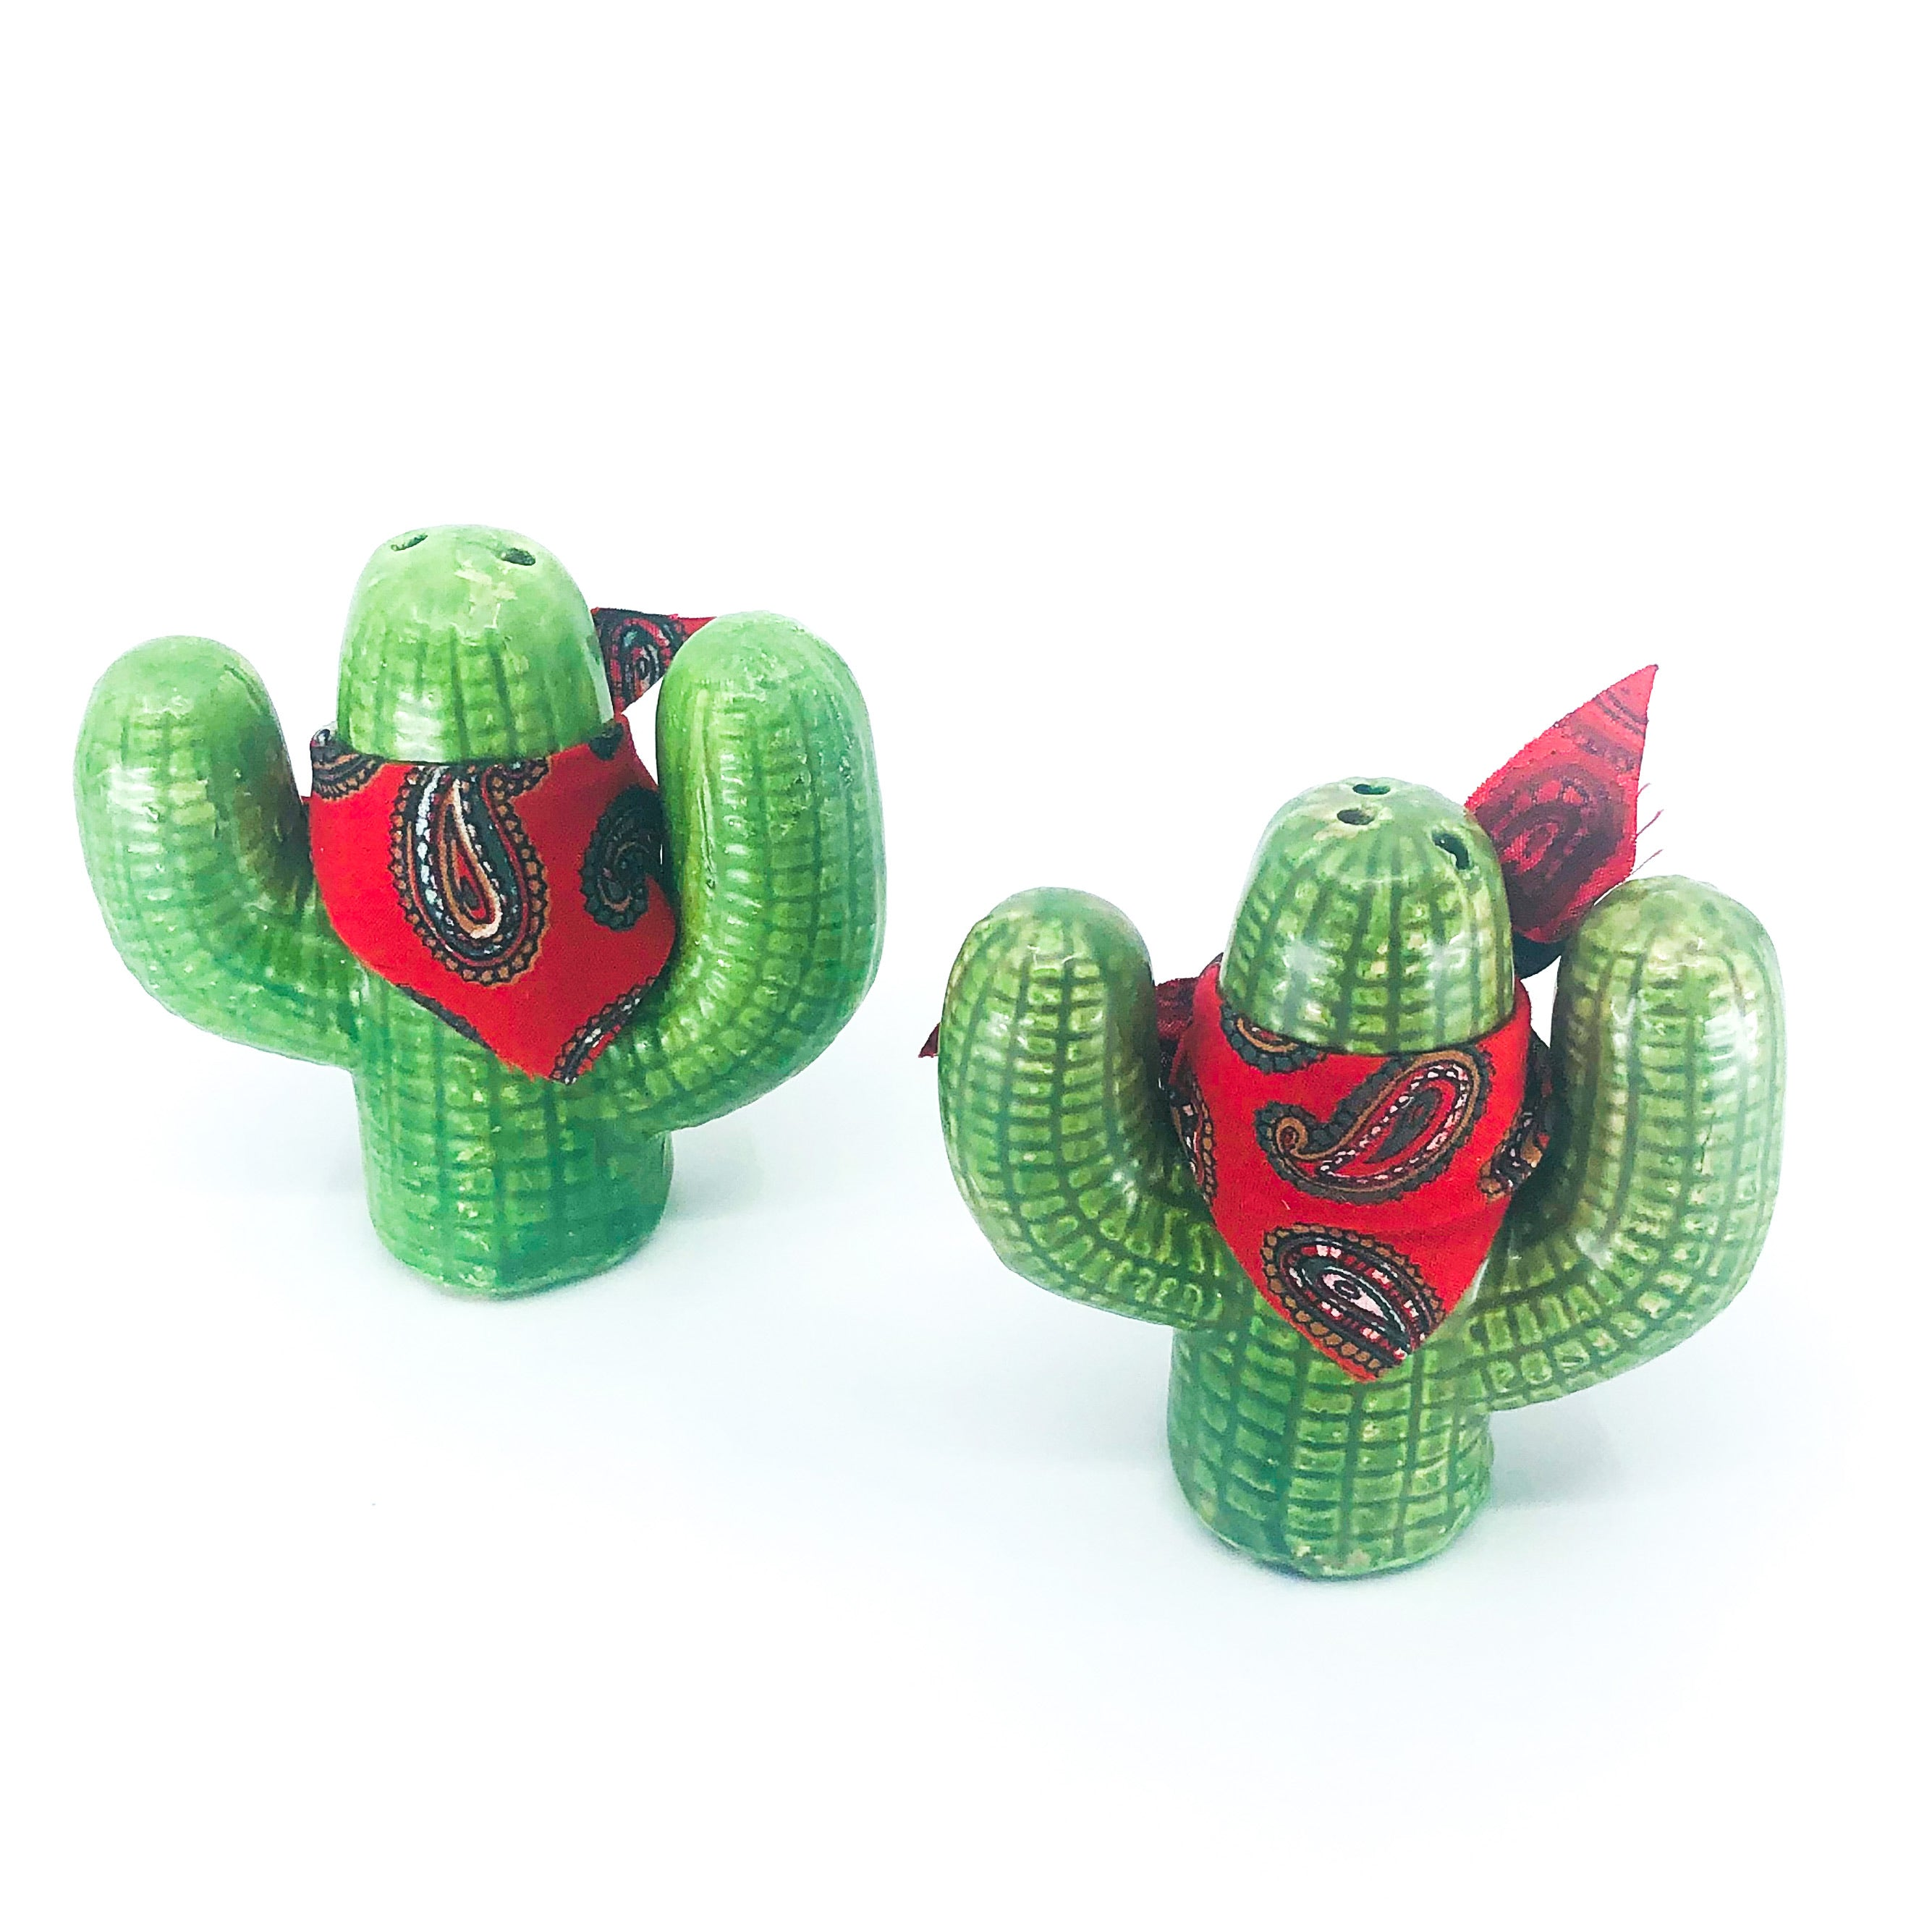 Vintage Pair of Cacti with Bandanas, Salt & Pepper Shaker